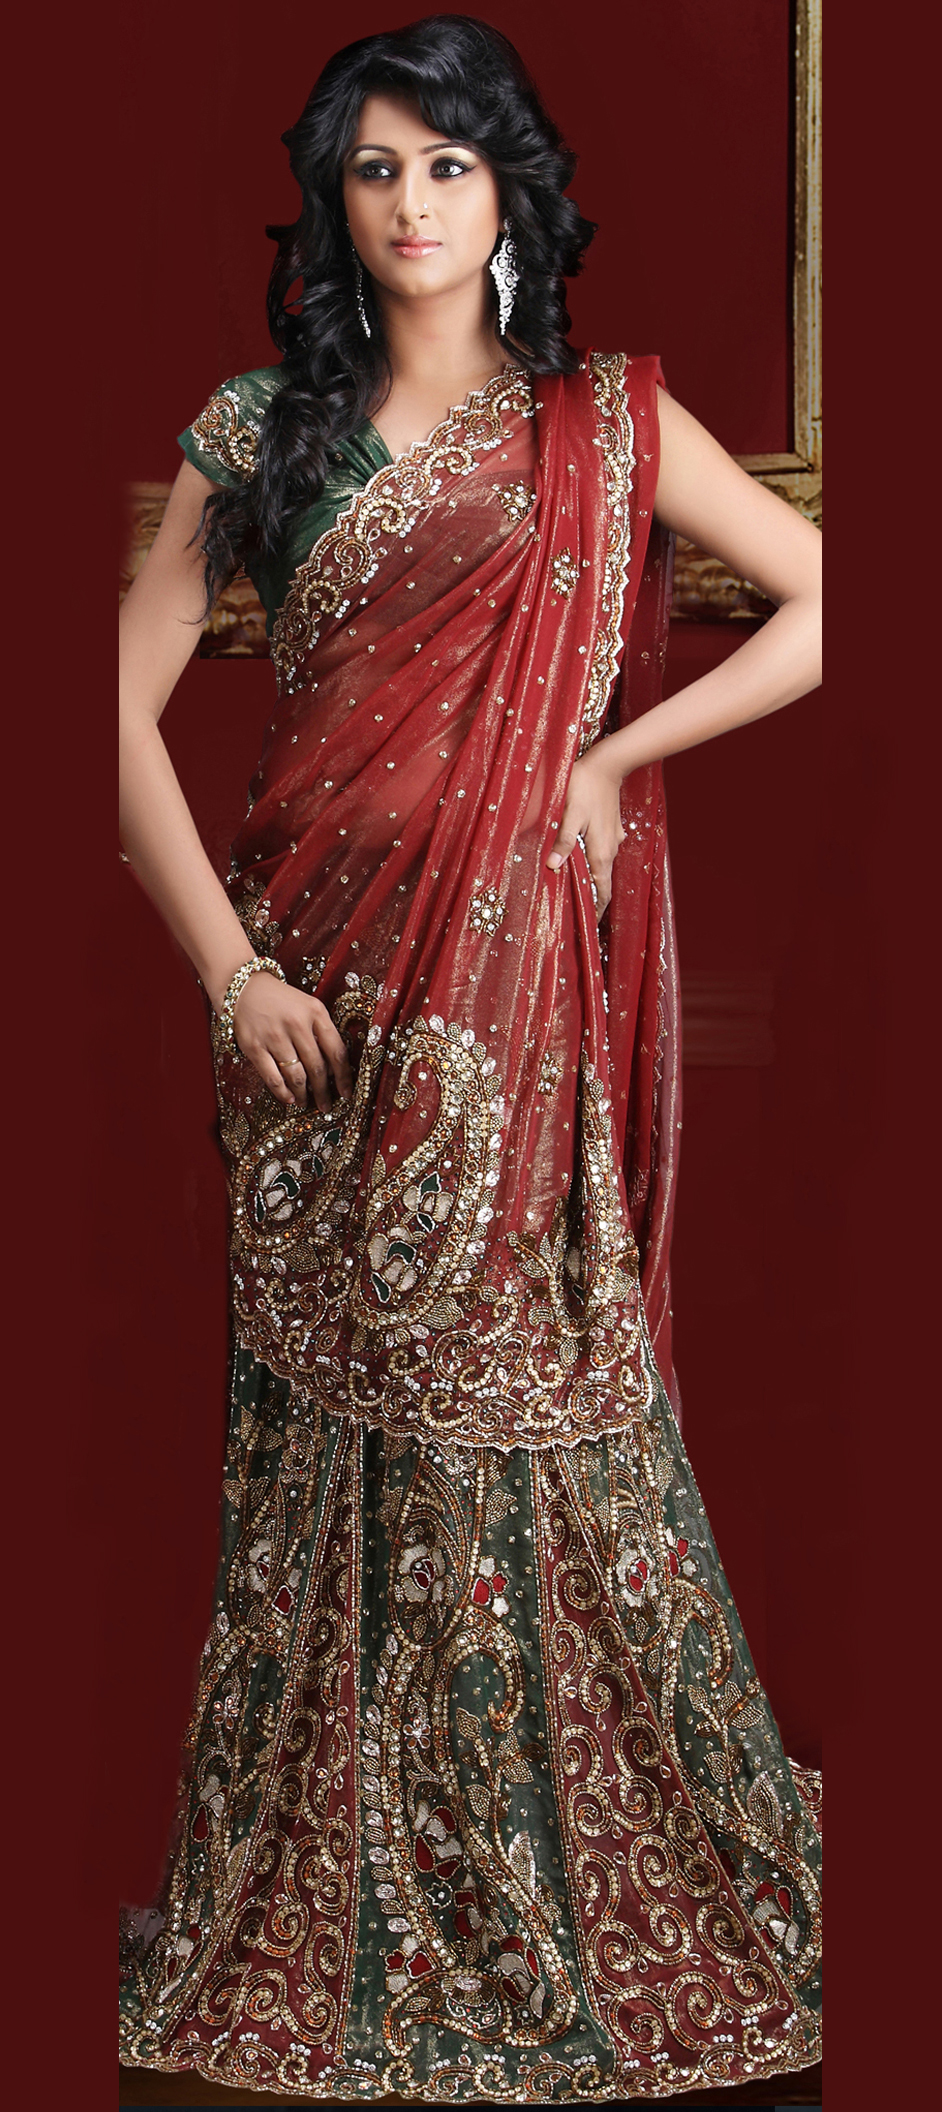 62084:Green,Red and Maroon color family Saree with matching ...